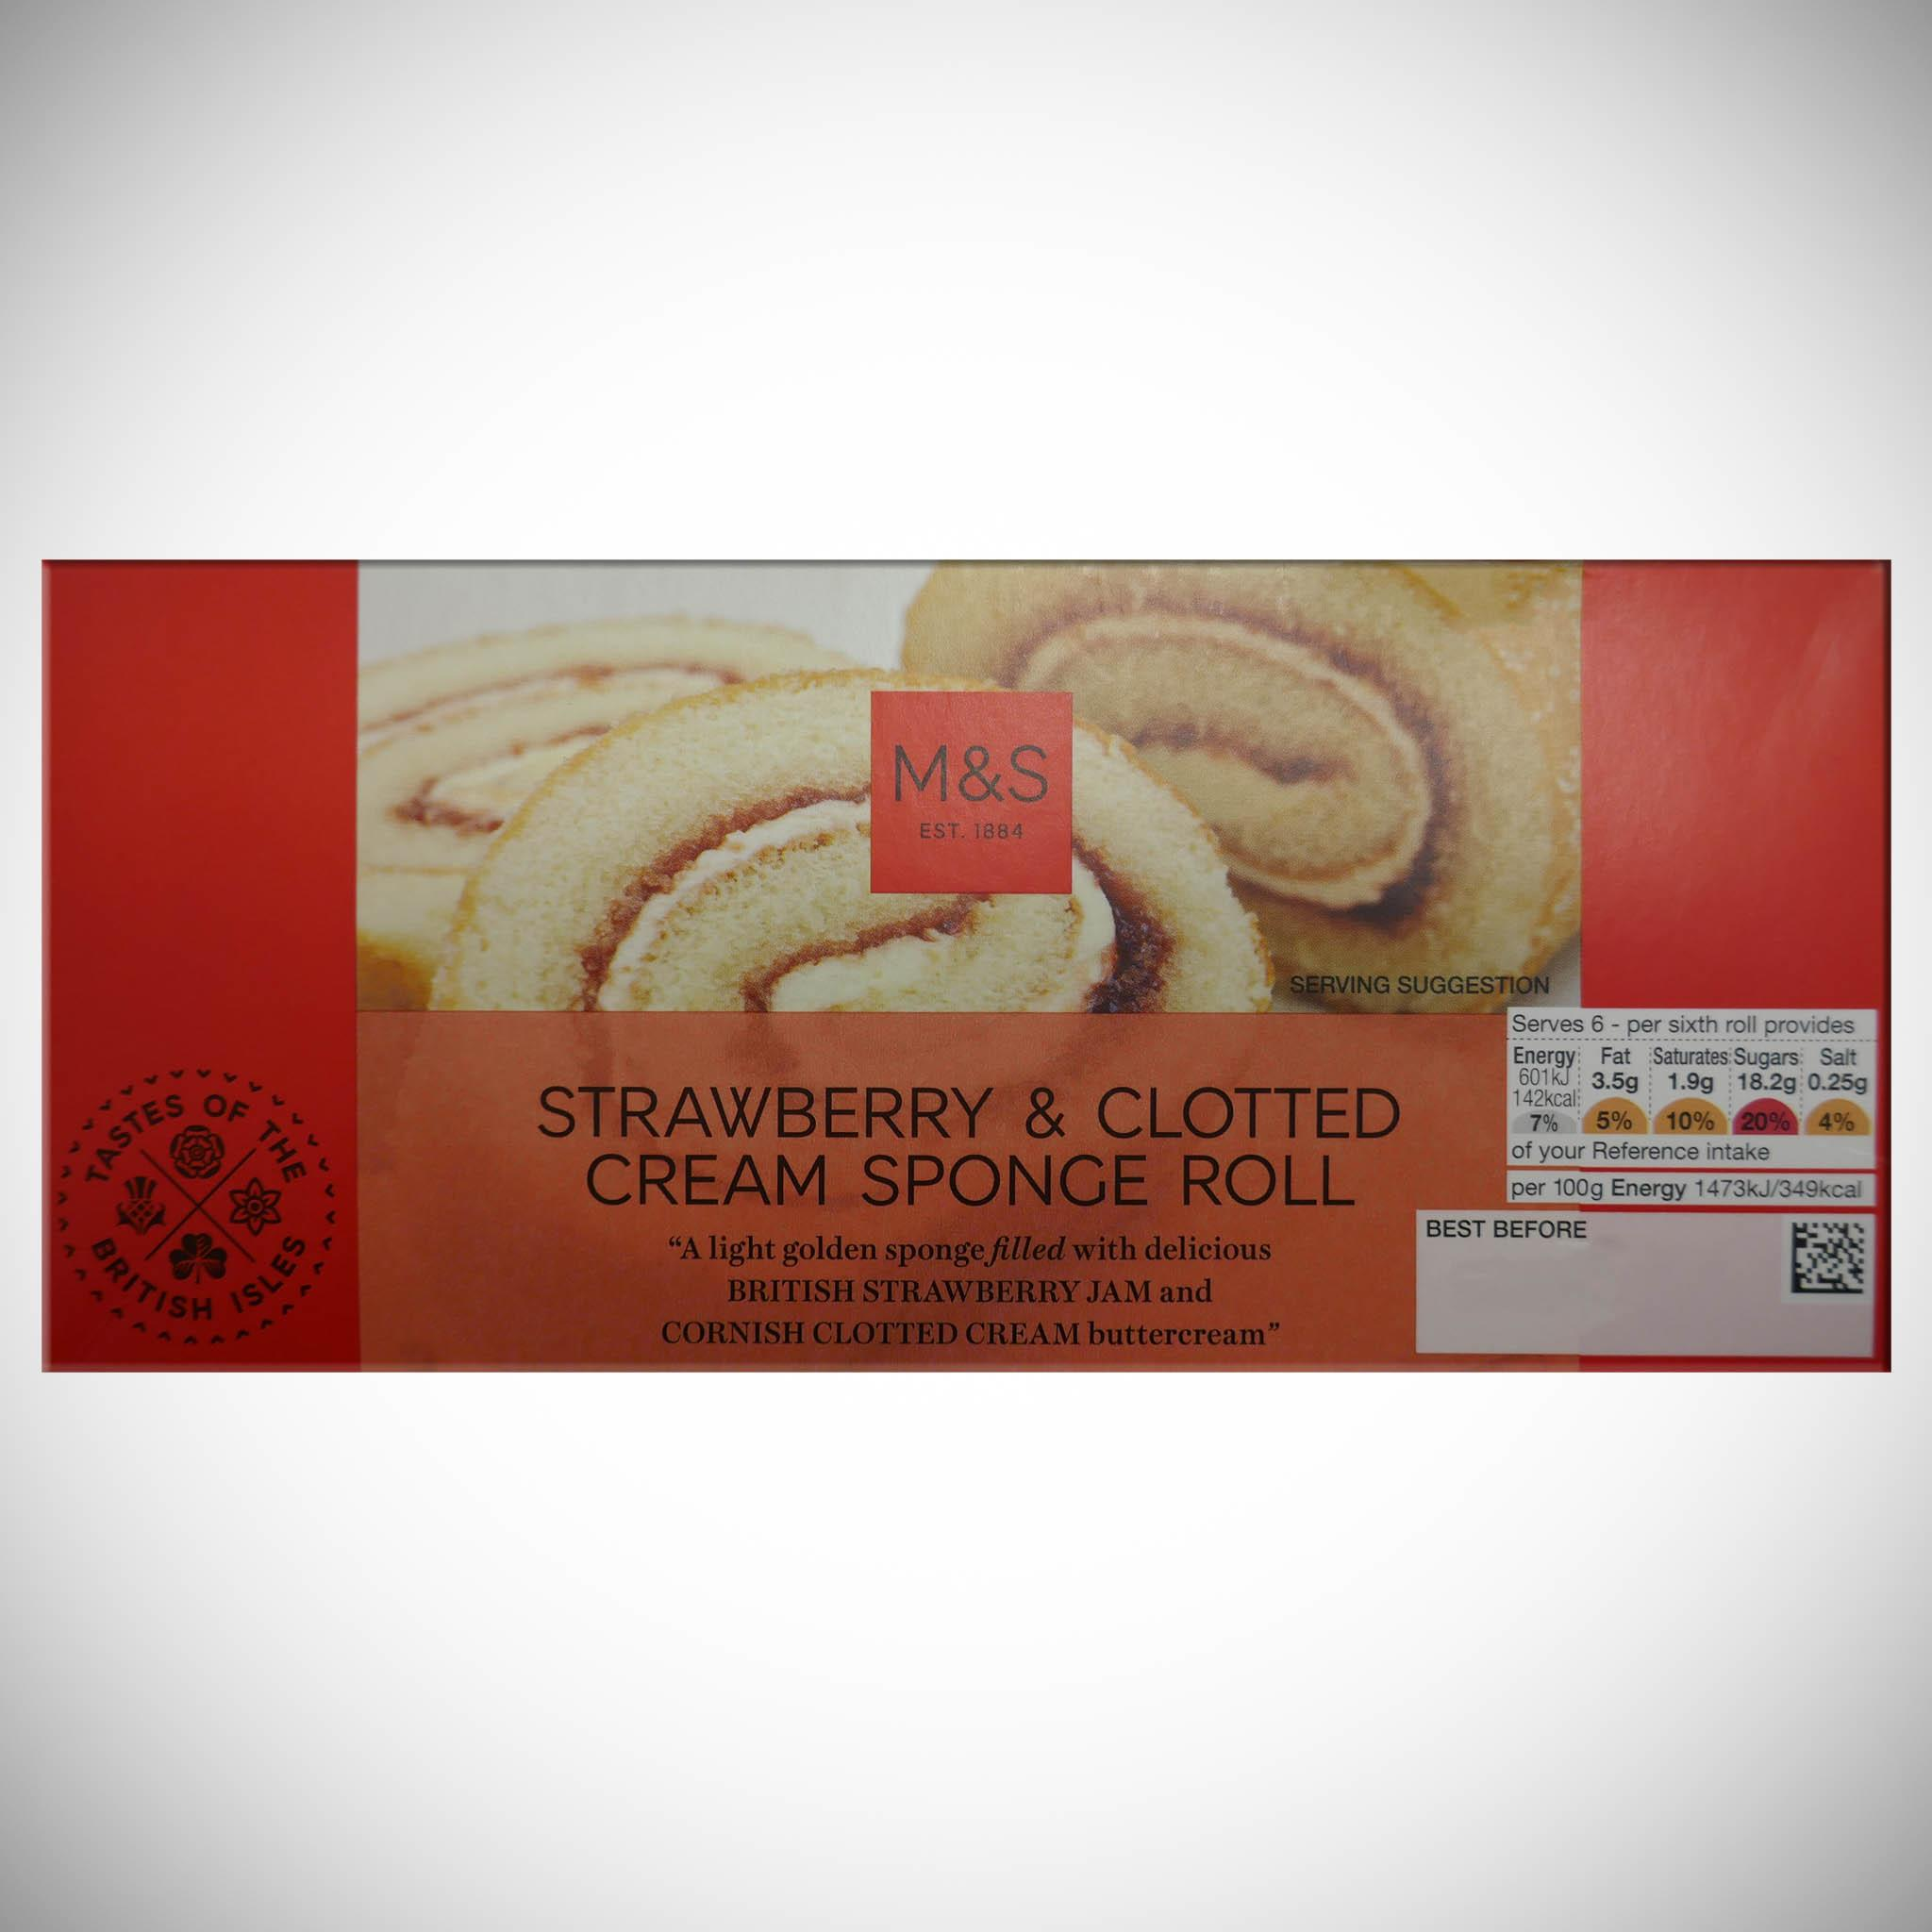 Strawberry & Clotted Cream Sponge Roll 245g